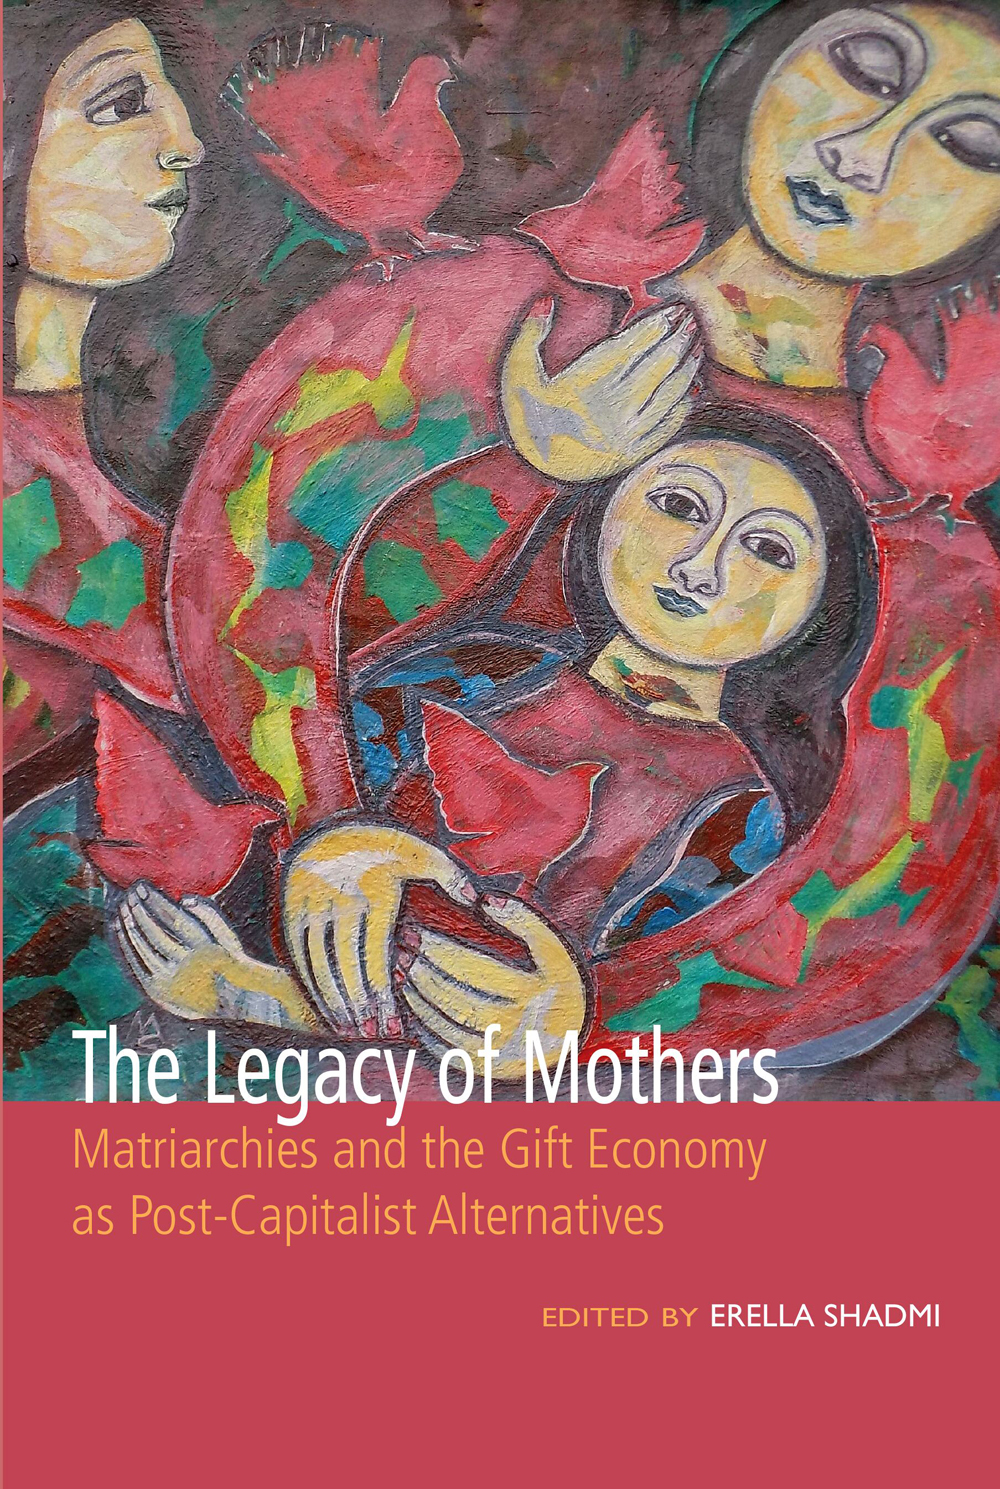 The Legacy of Mothers: Matriarchies and the Gift Economy as Post Capitalist Alternatives